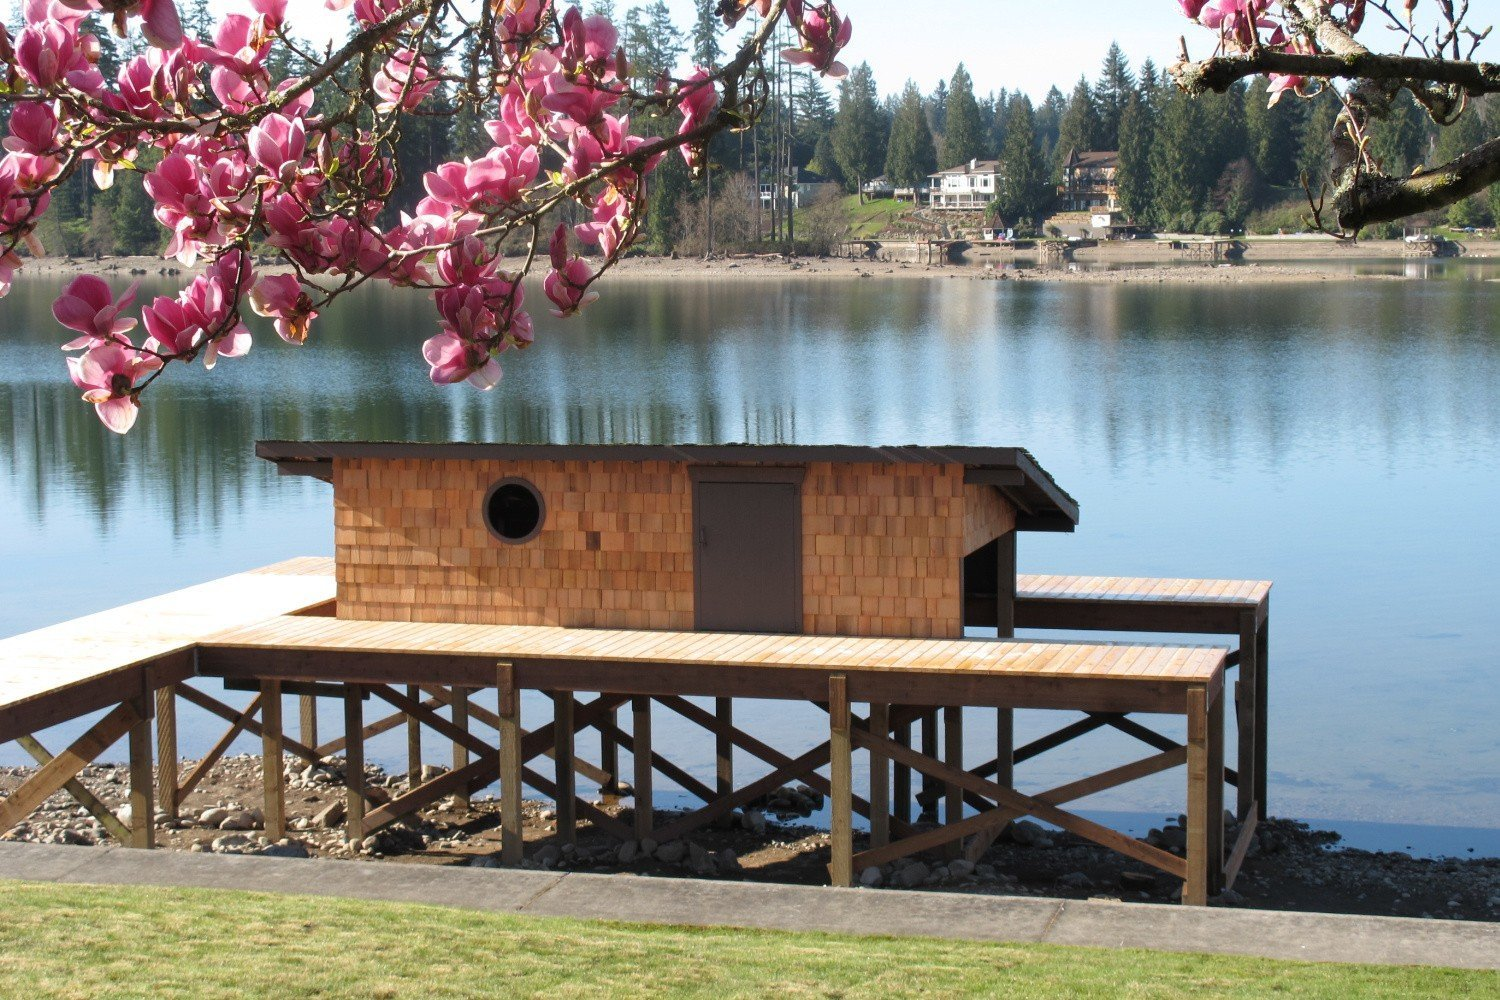 Lake Tapps Boat House Remodel - After Home Builder Remodel Puyallup WA | Mike Schwartz Construction